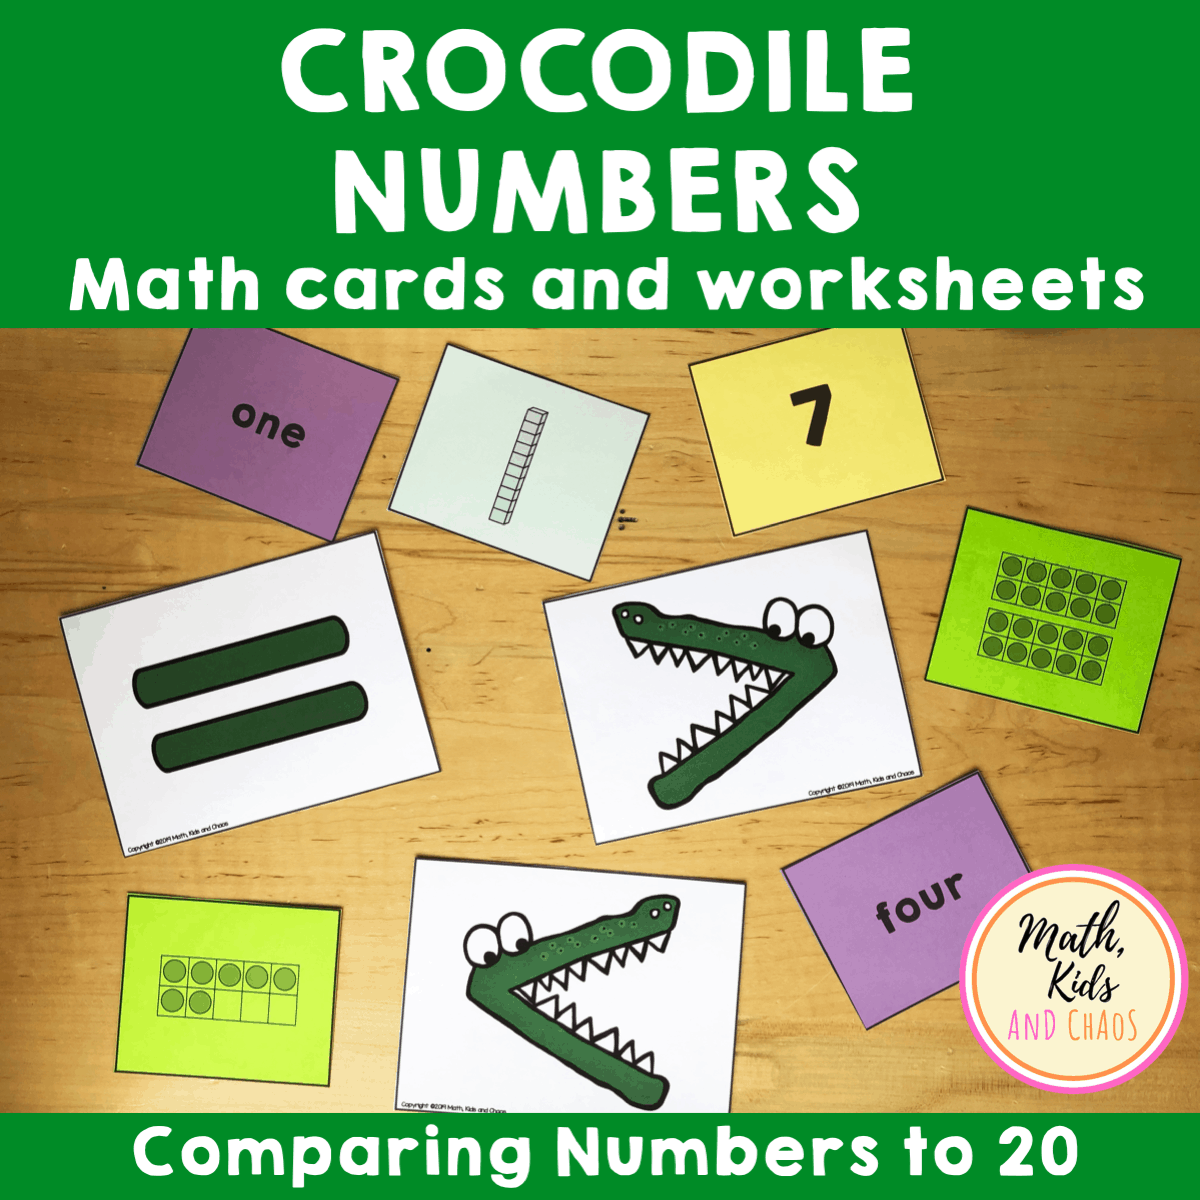 Crocodile Numbers product cover